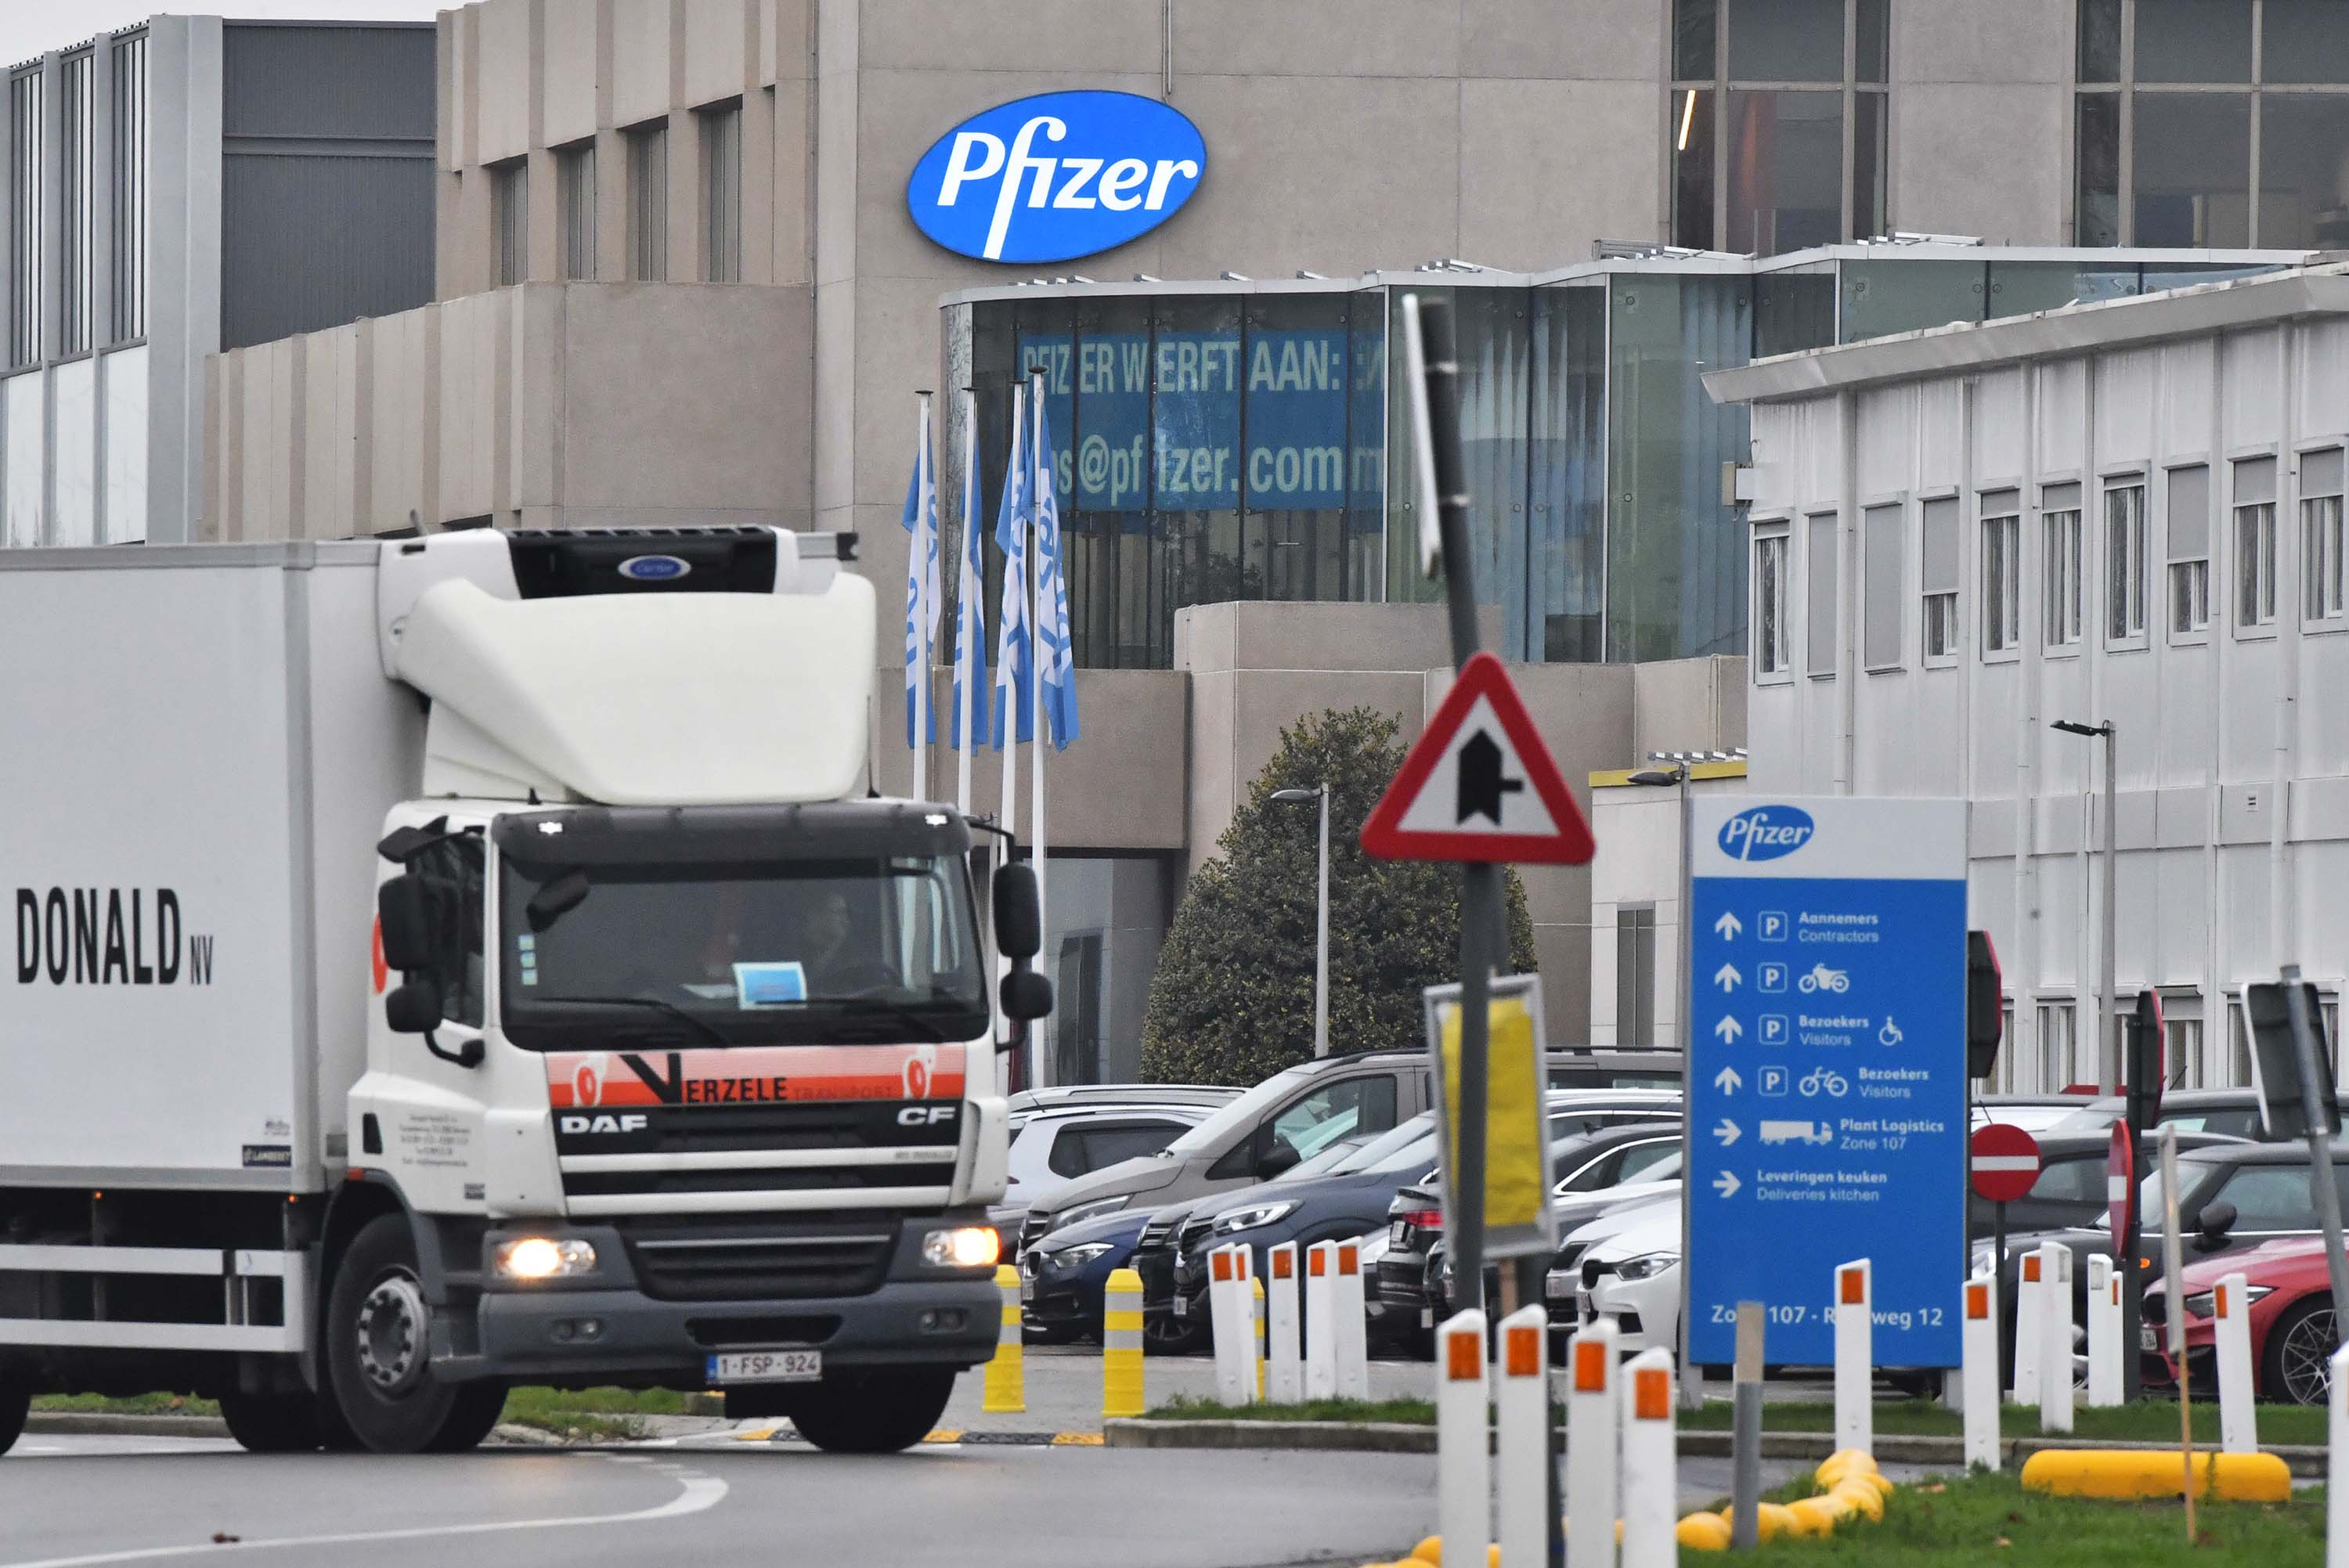 A temperature controlled cold storage truck leaves the Pfizer Inc. facility in Puurs, Belgium, on December 3.